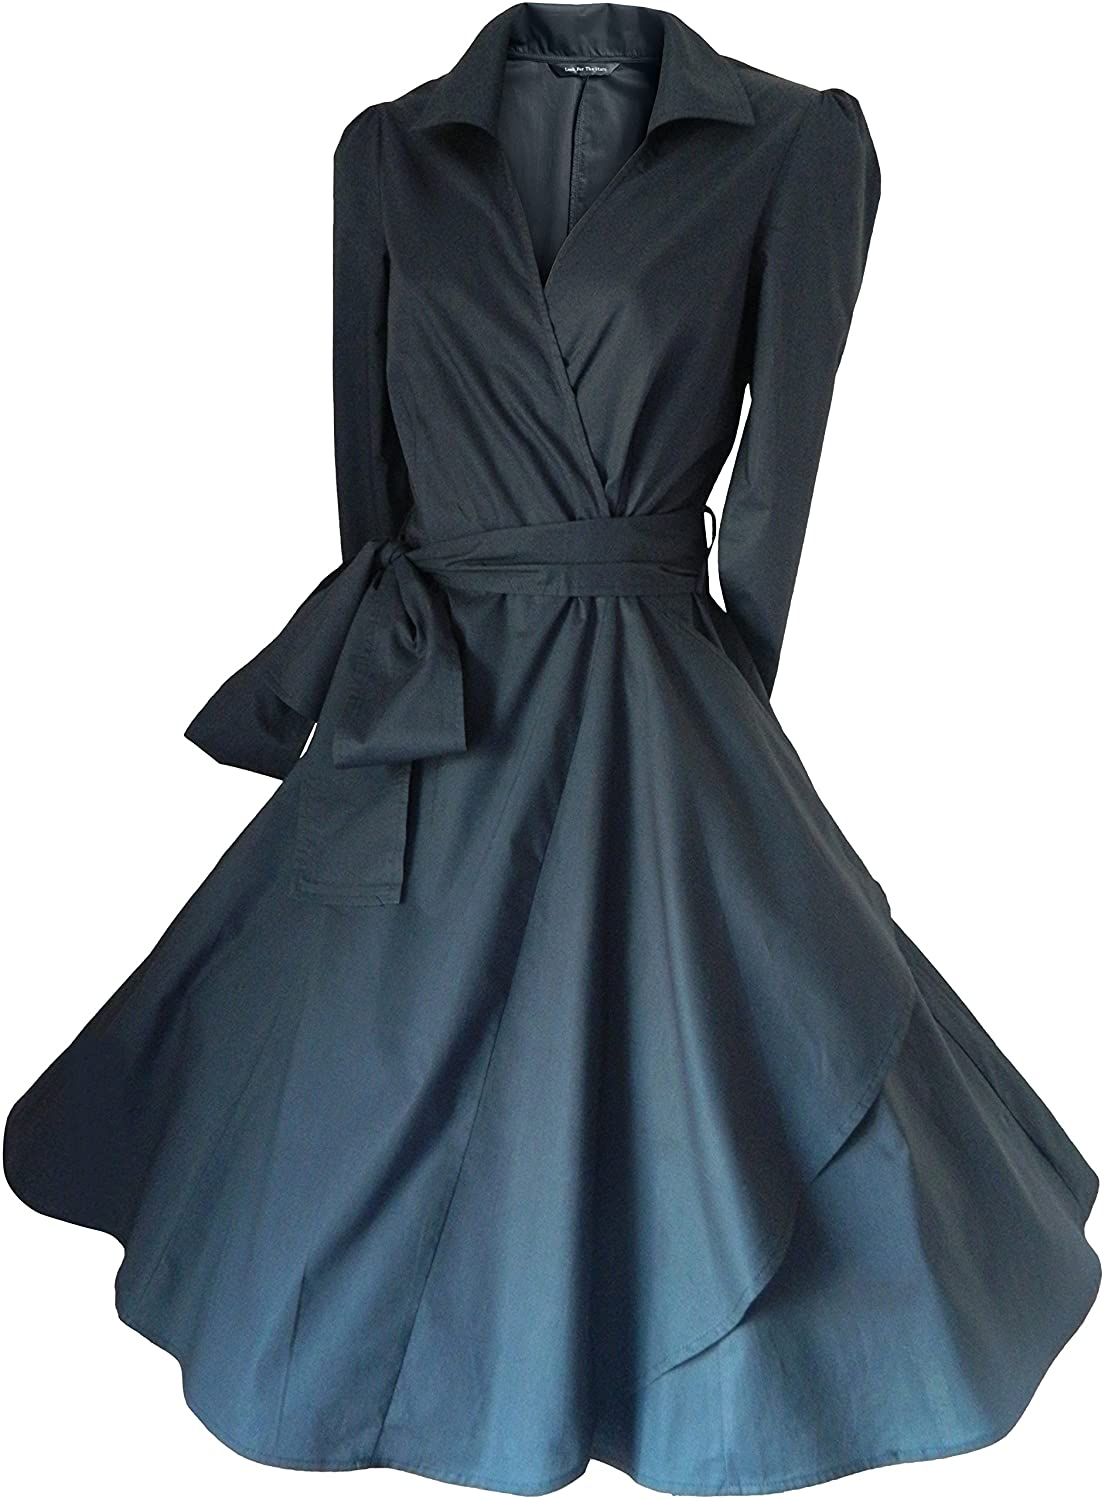 LOOK FOR THE STARS Women's 50's Style Rockabilly Dress Sizes 4-22